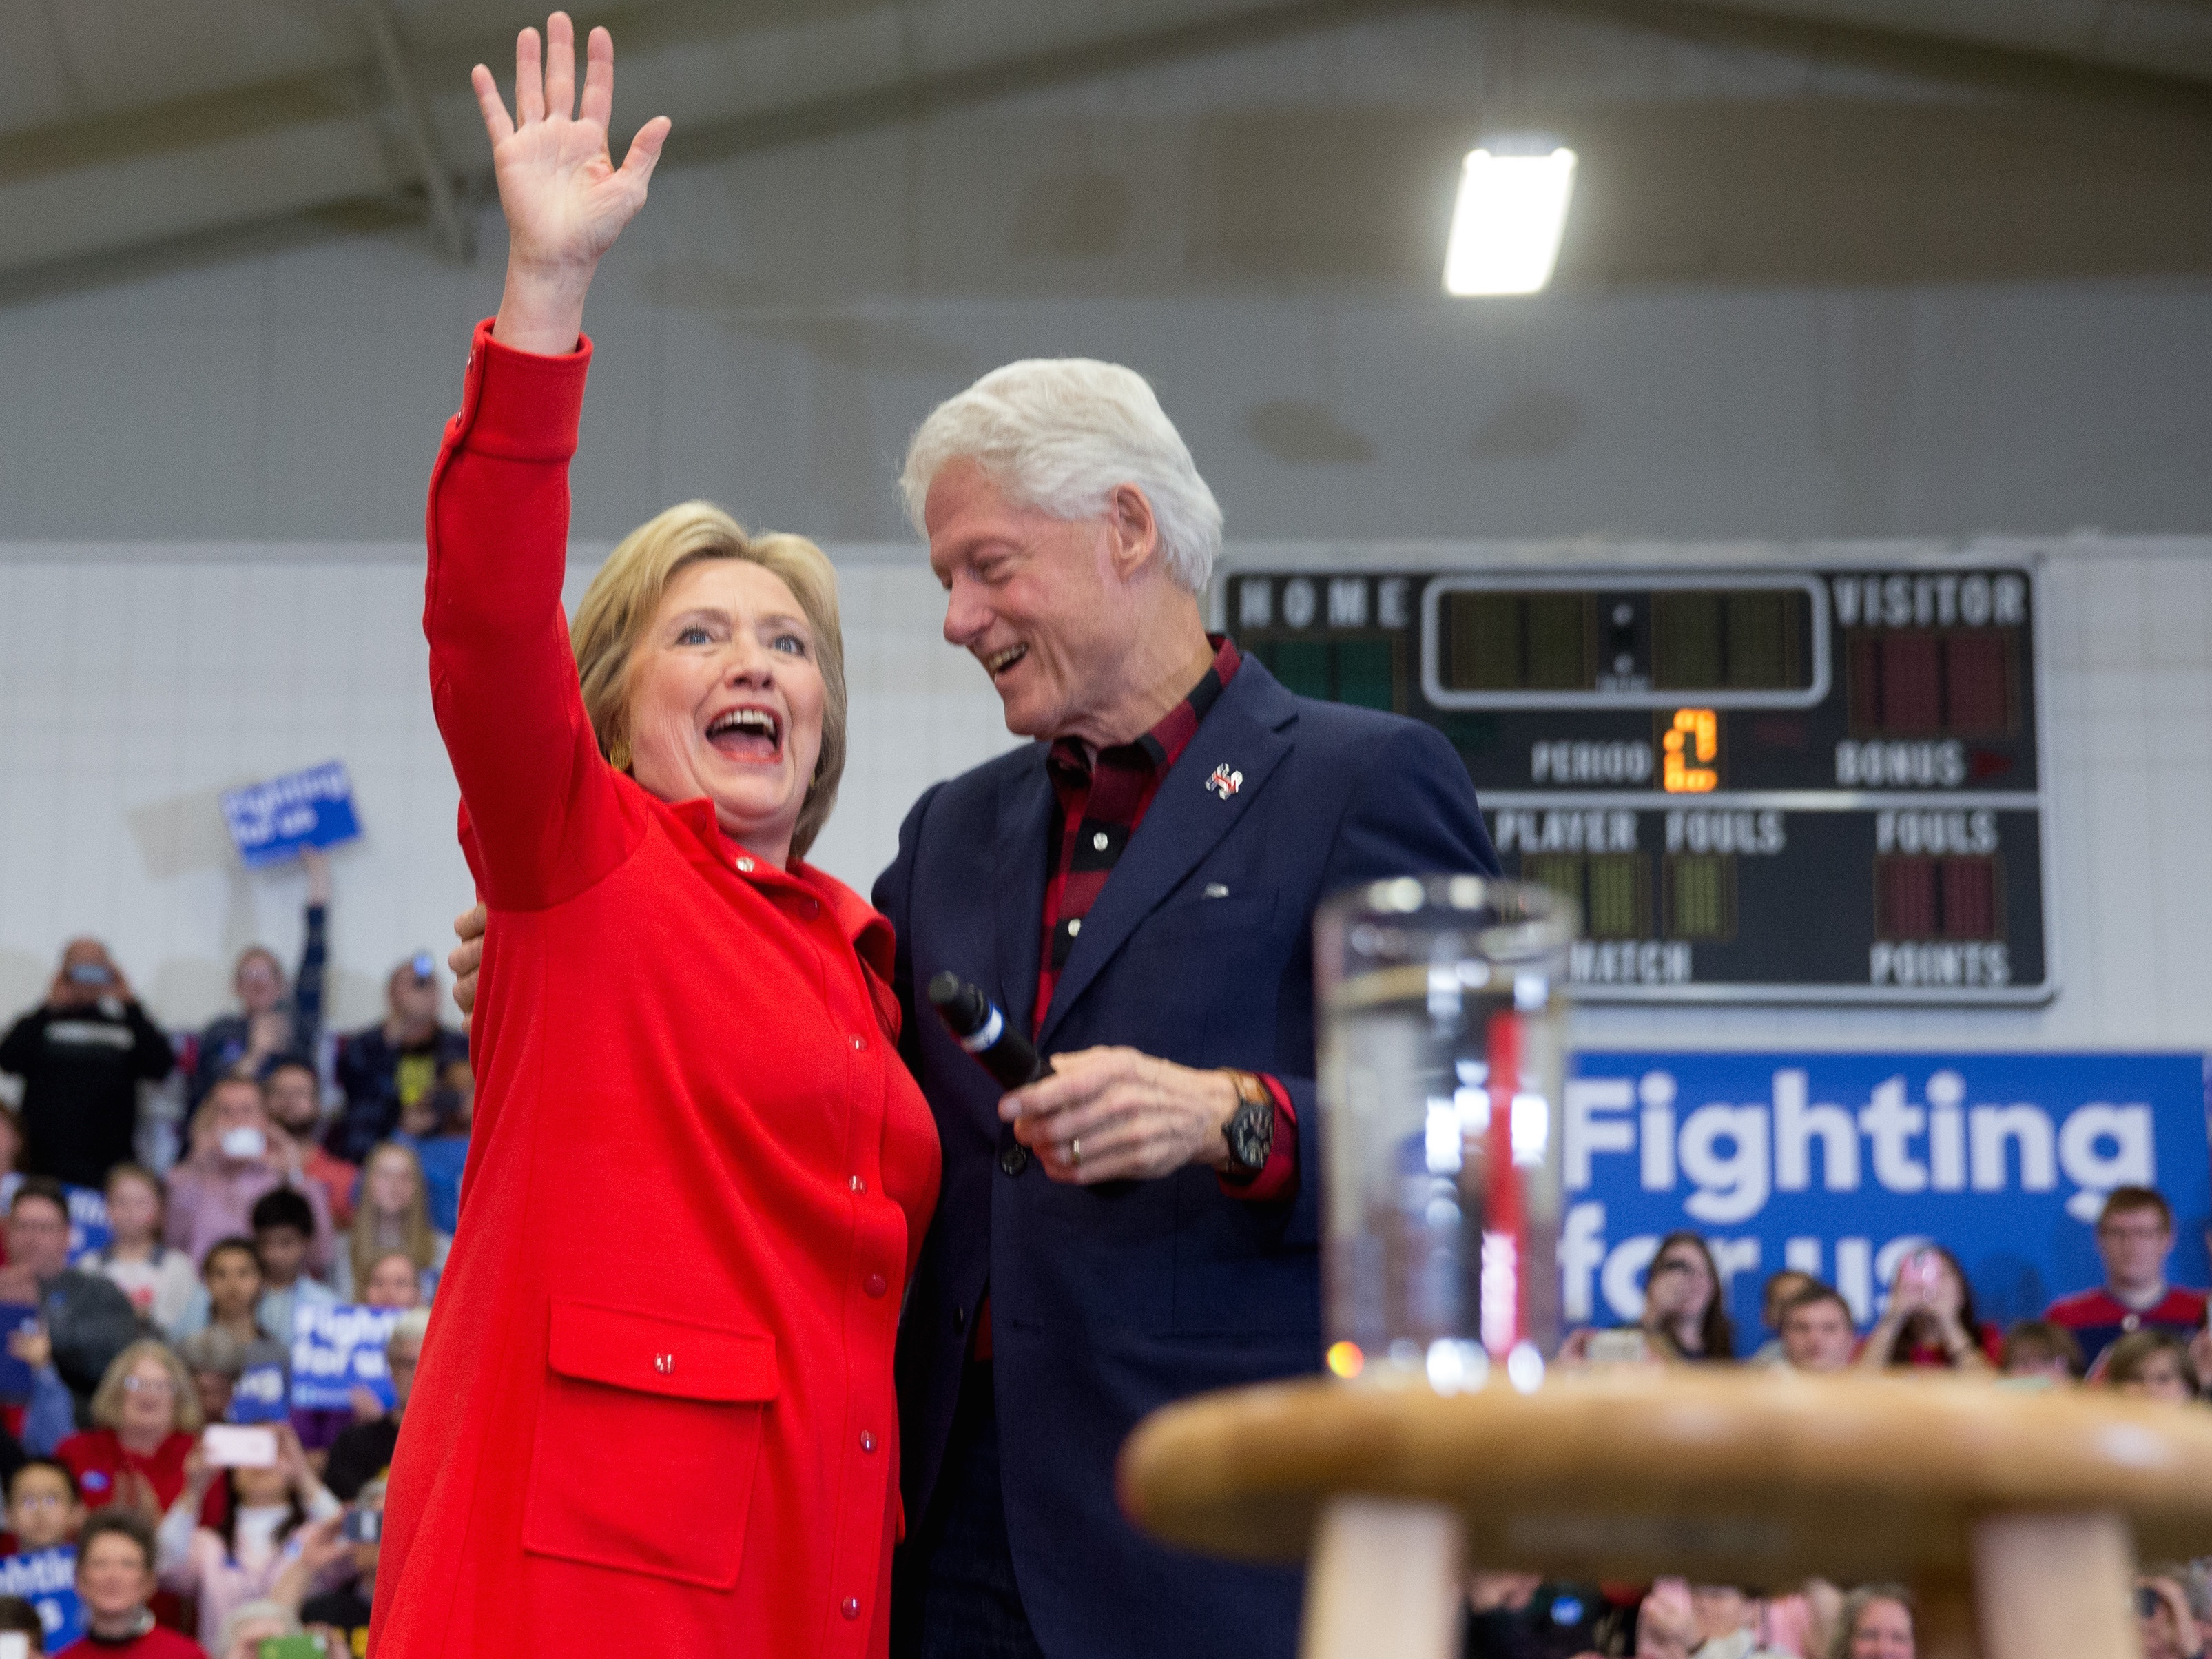 Hillary Clinton May Win Iowa After All